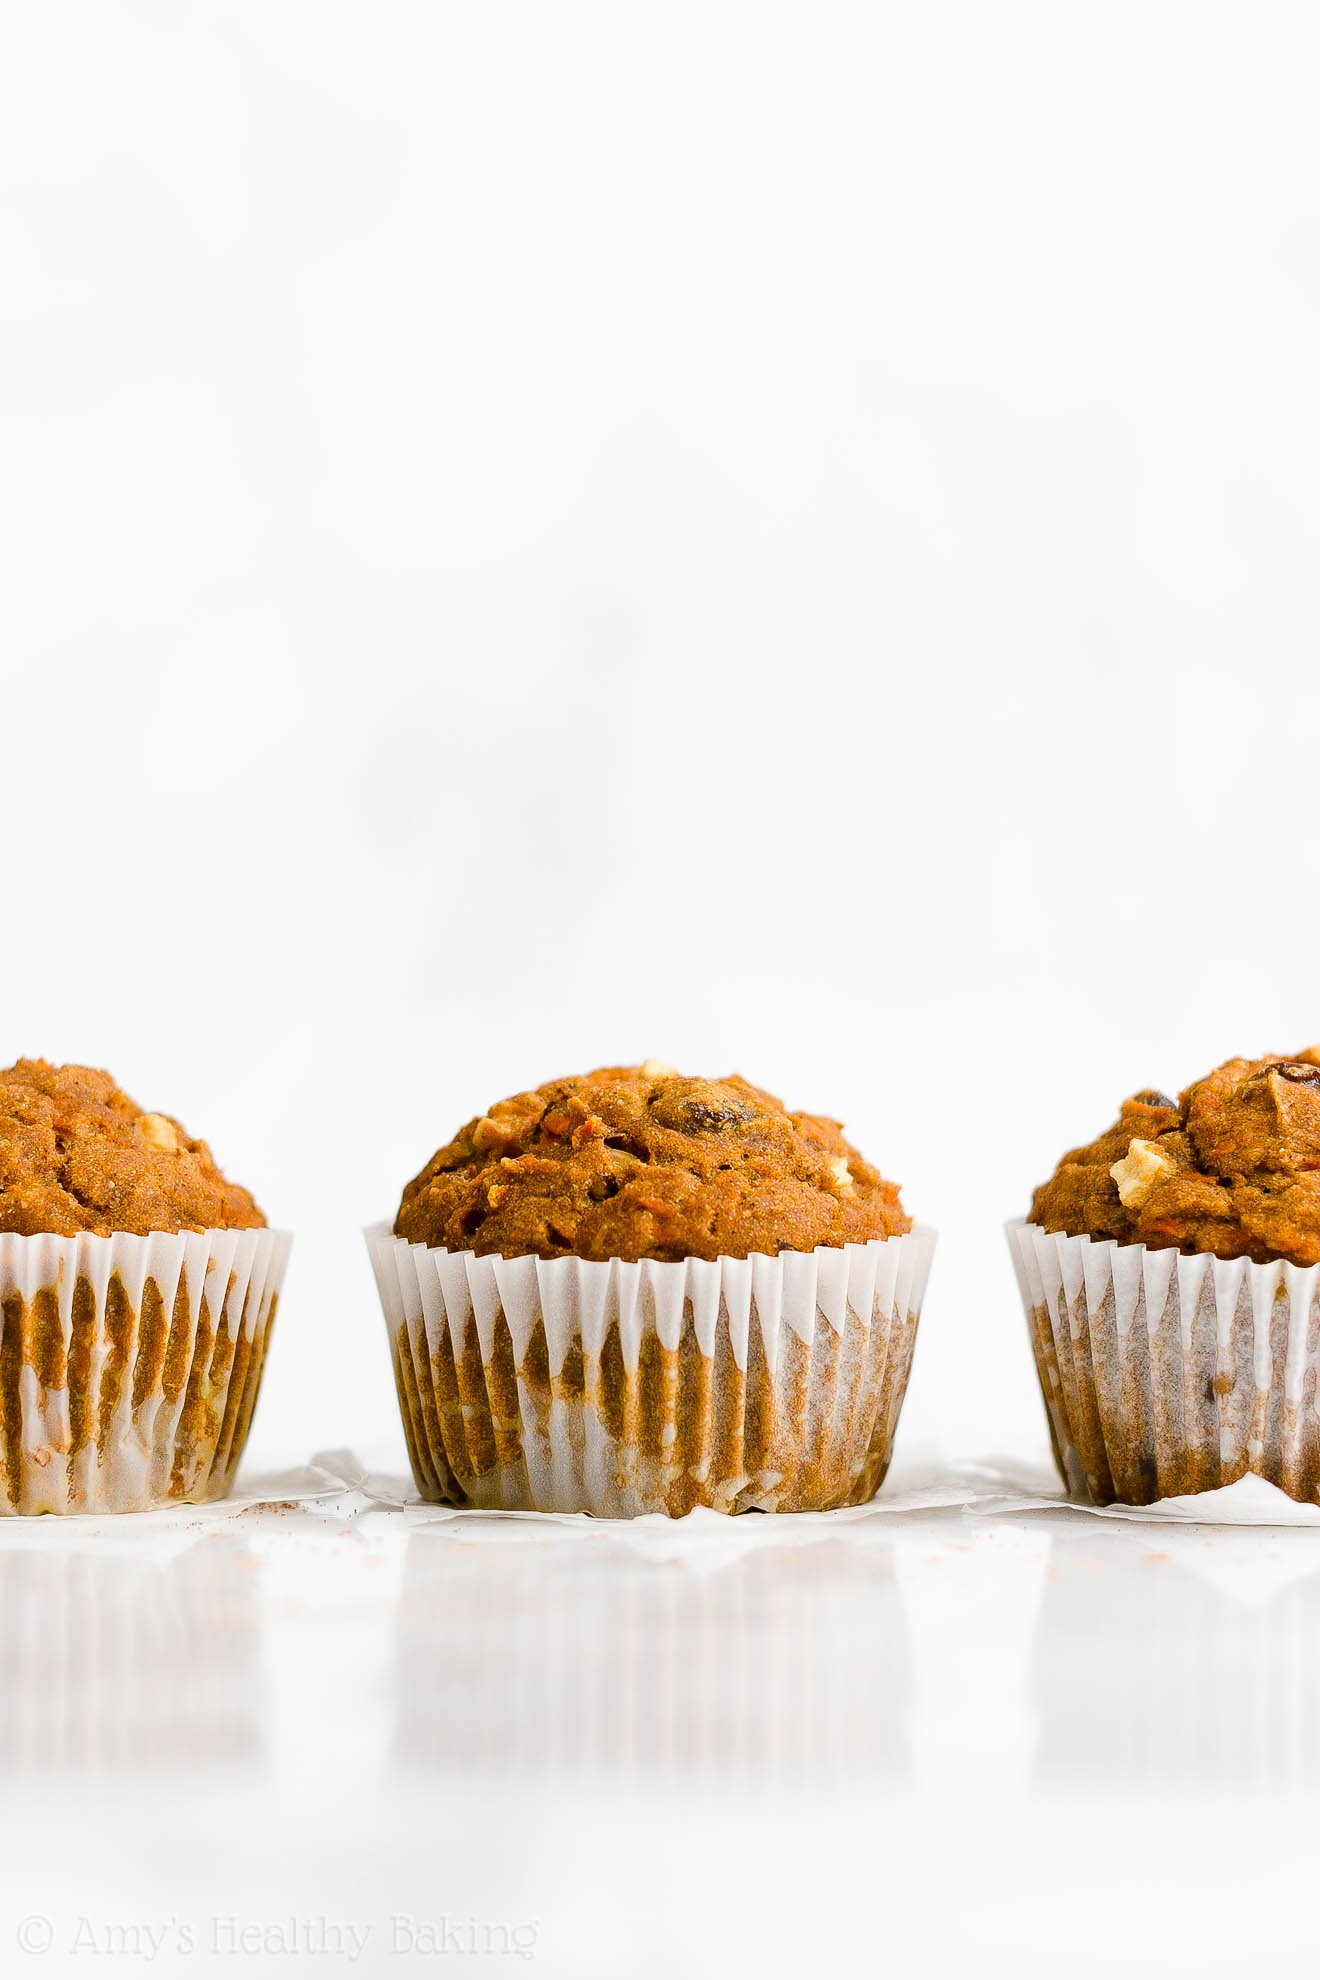 Best Easy Healthy Weight Watchers No Sugar Pumpkin Morning Glory Muffins